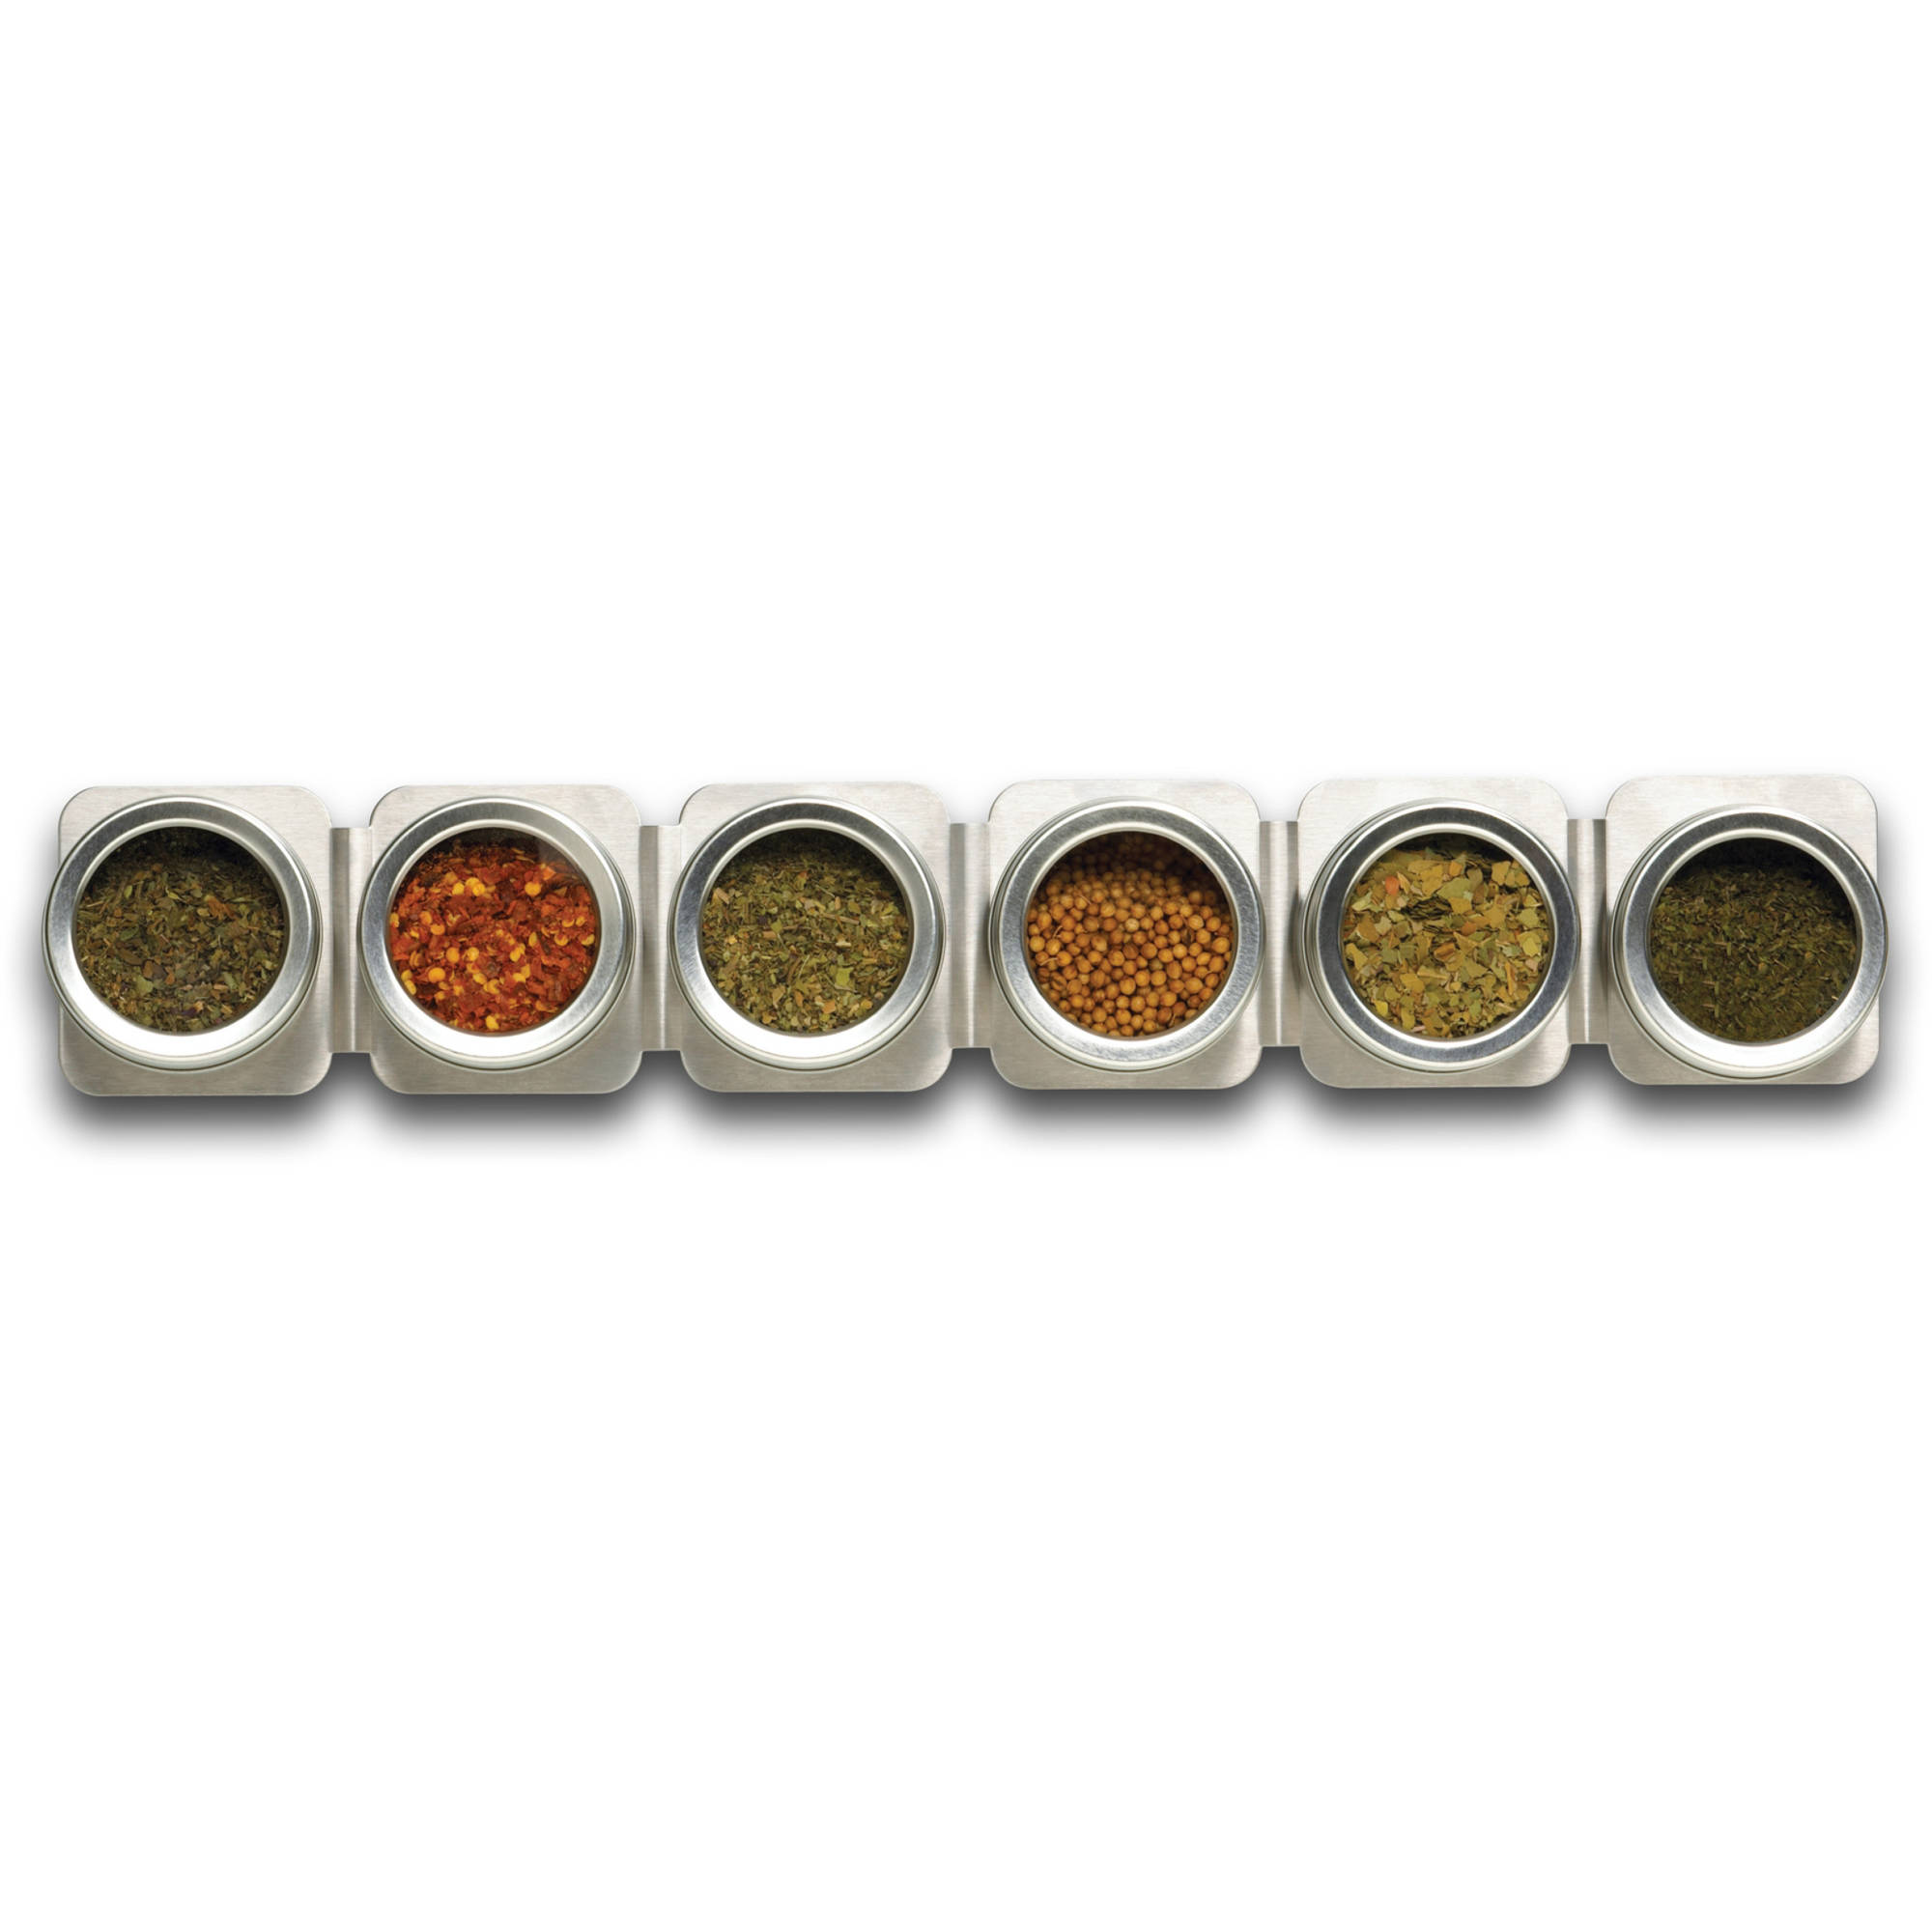 Kamenstein 6-Can Magnetic Spice Rack by Lifetime Brands